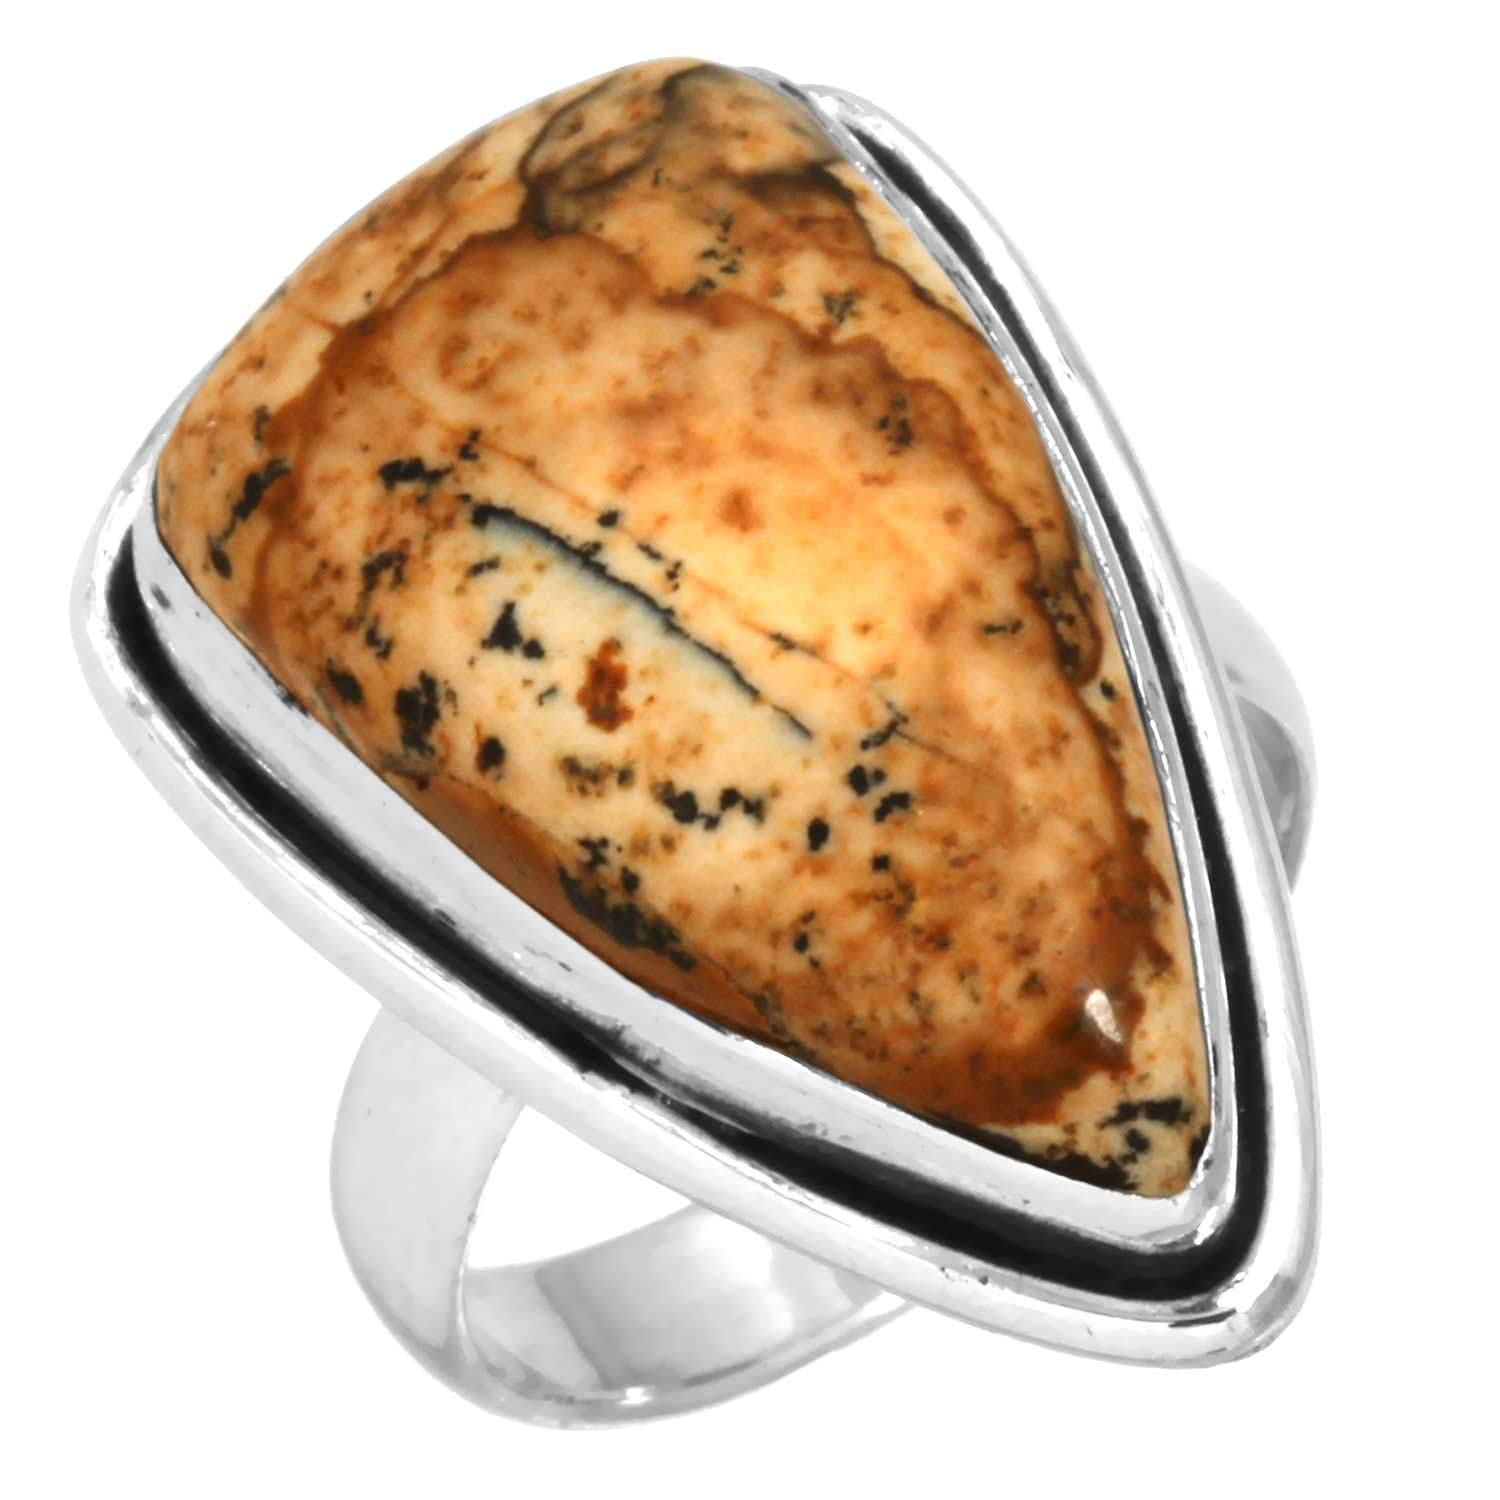 Solid 925 Sterling Silver Ring Natural Picture Jasper Handcrafted Jewelry Size 5